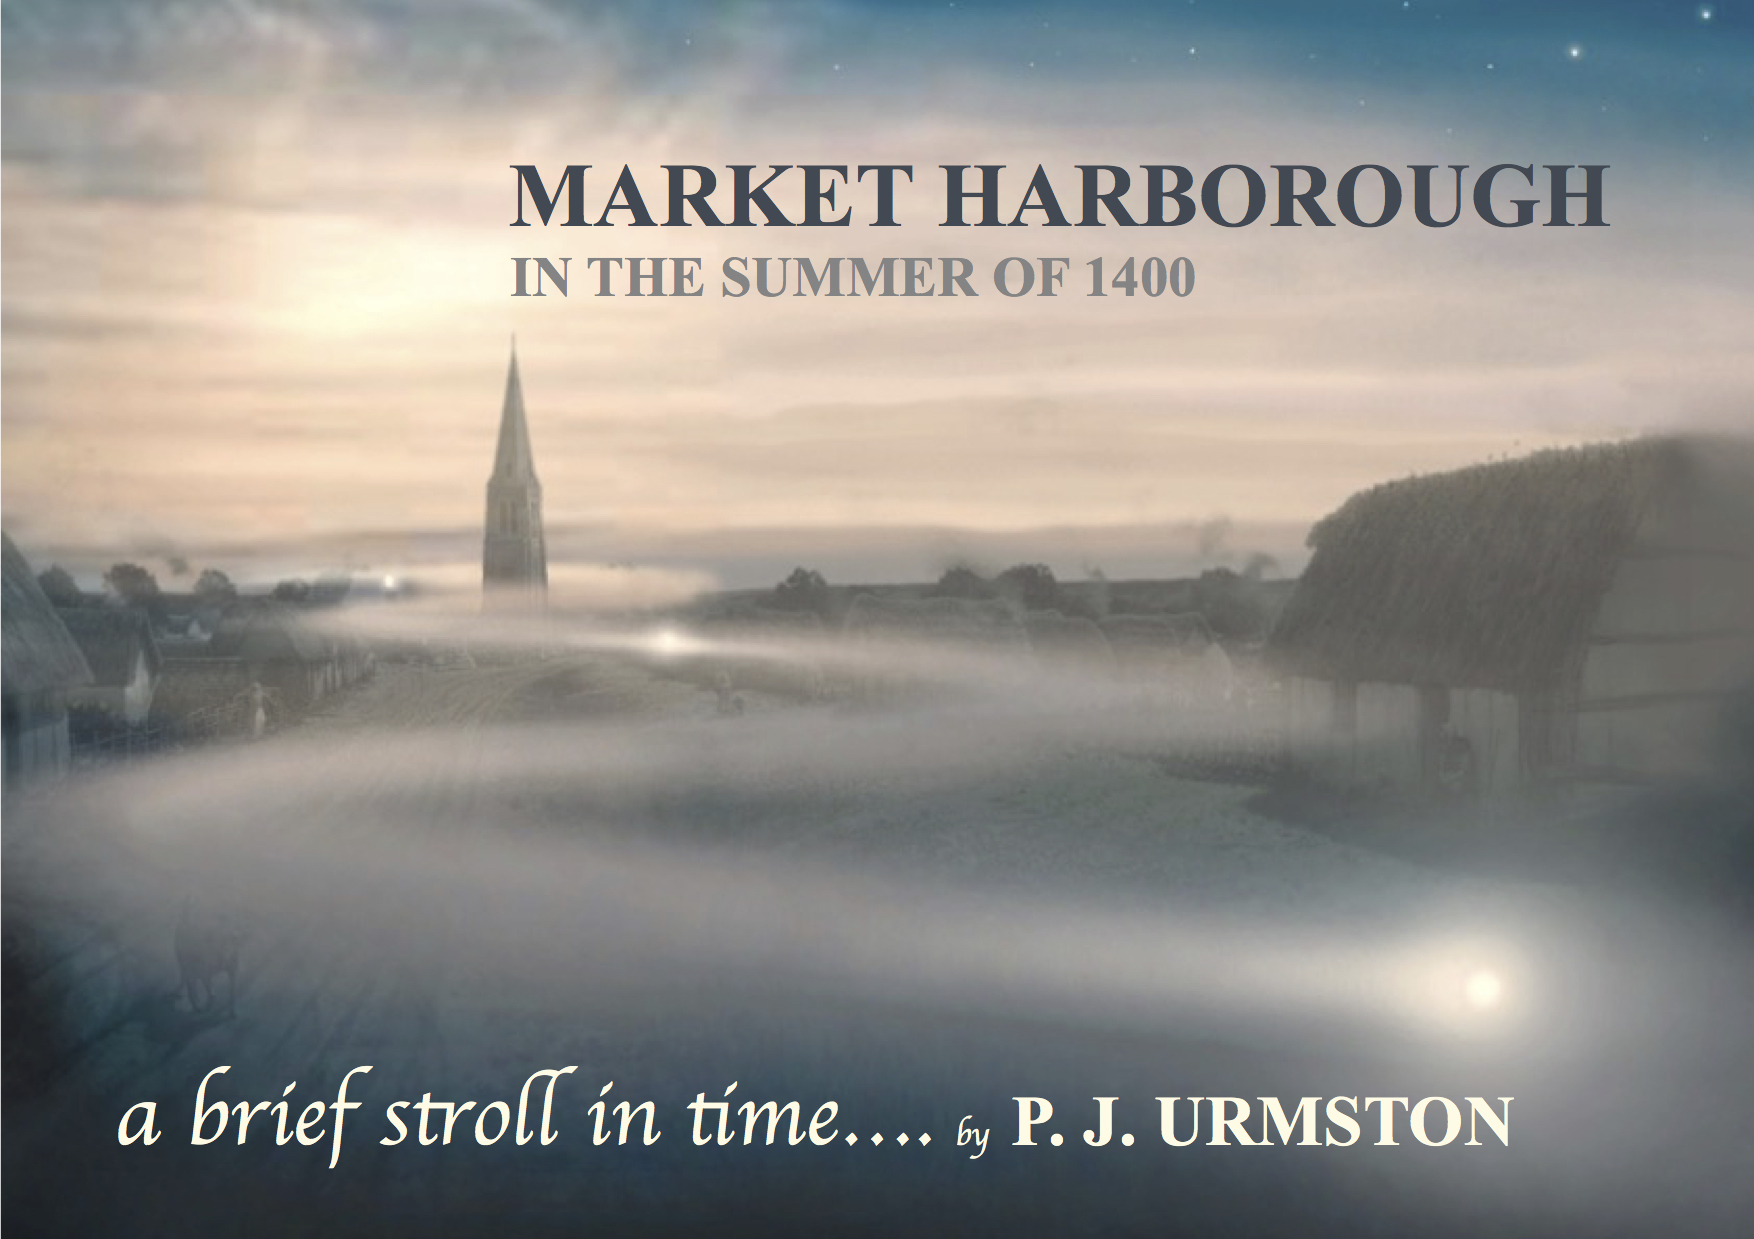 MARKET HARBOROUGH IN THE SUMMER OF 1400